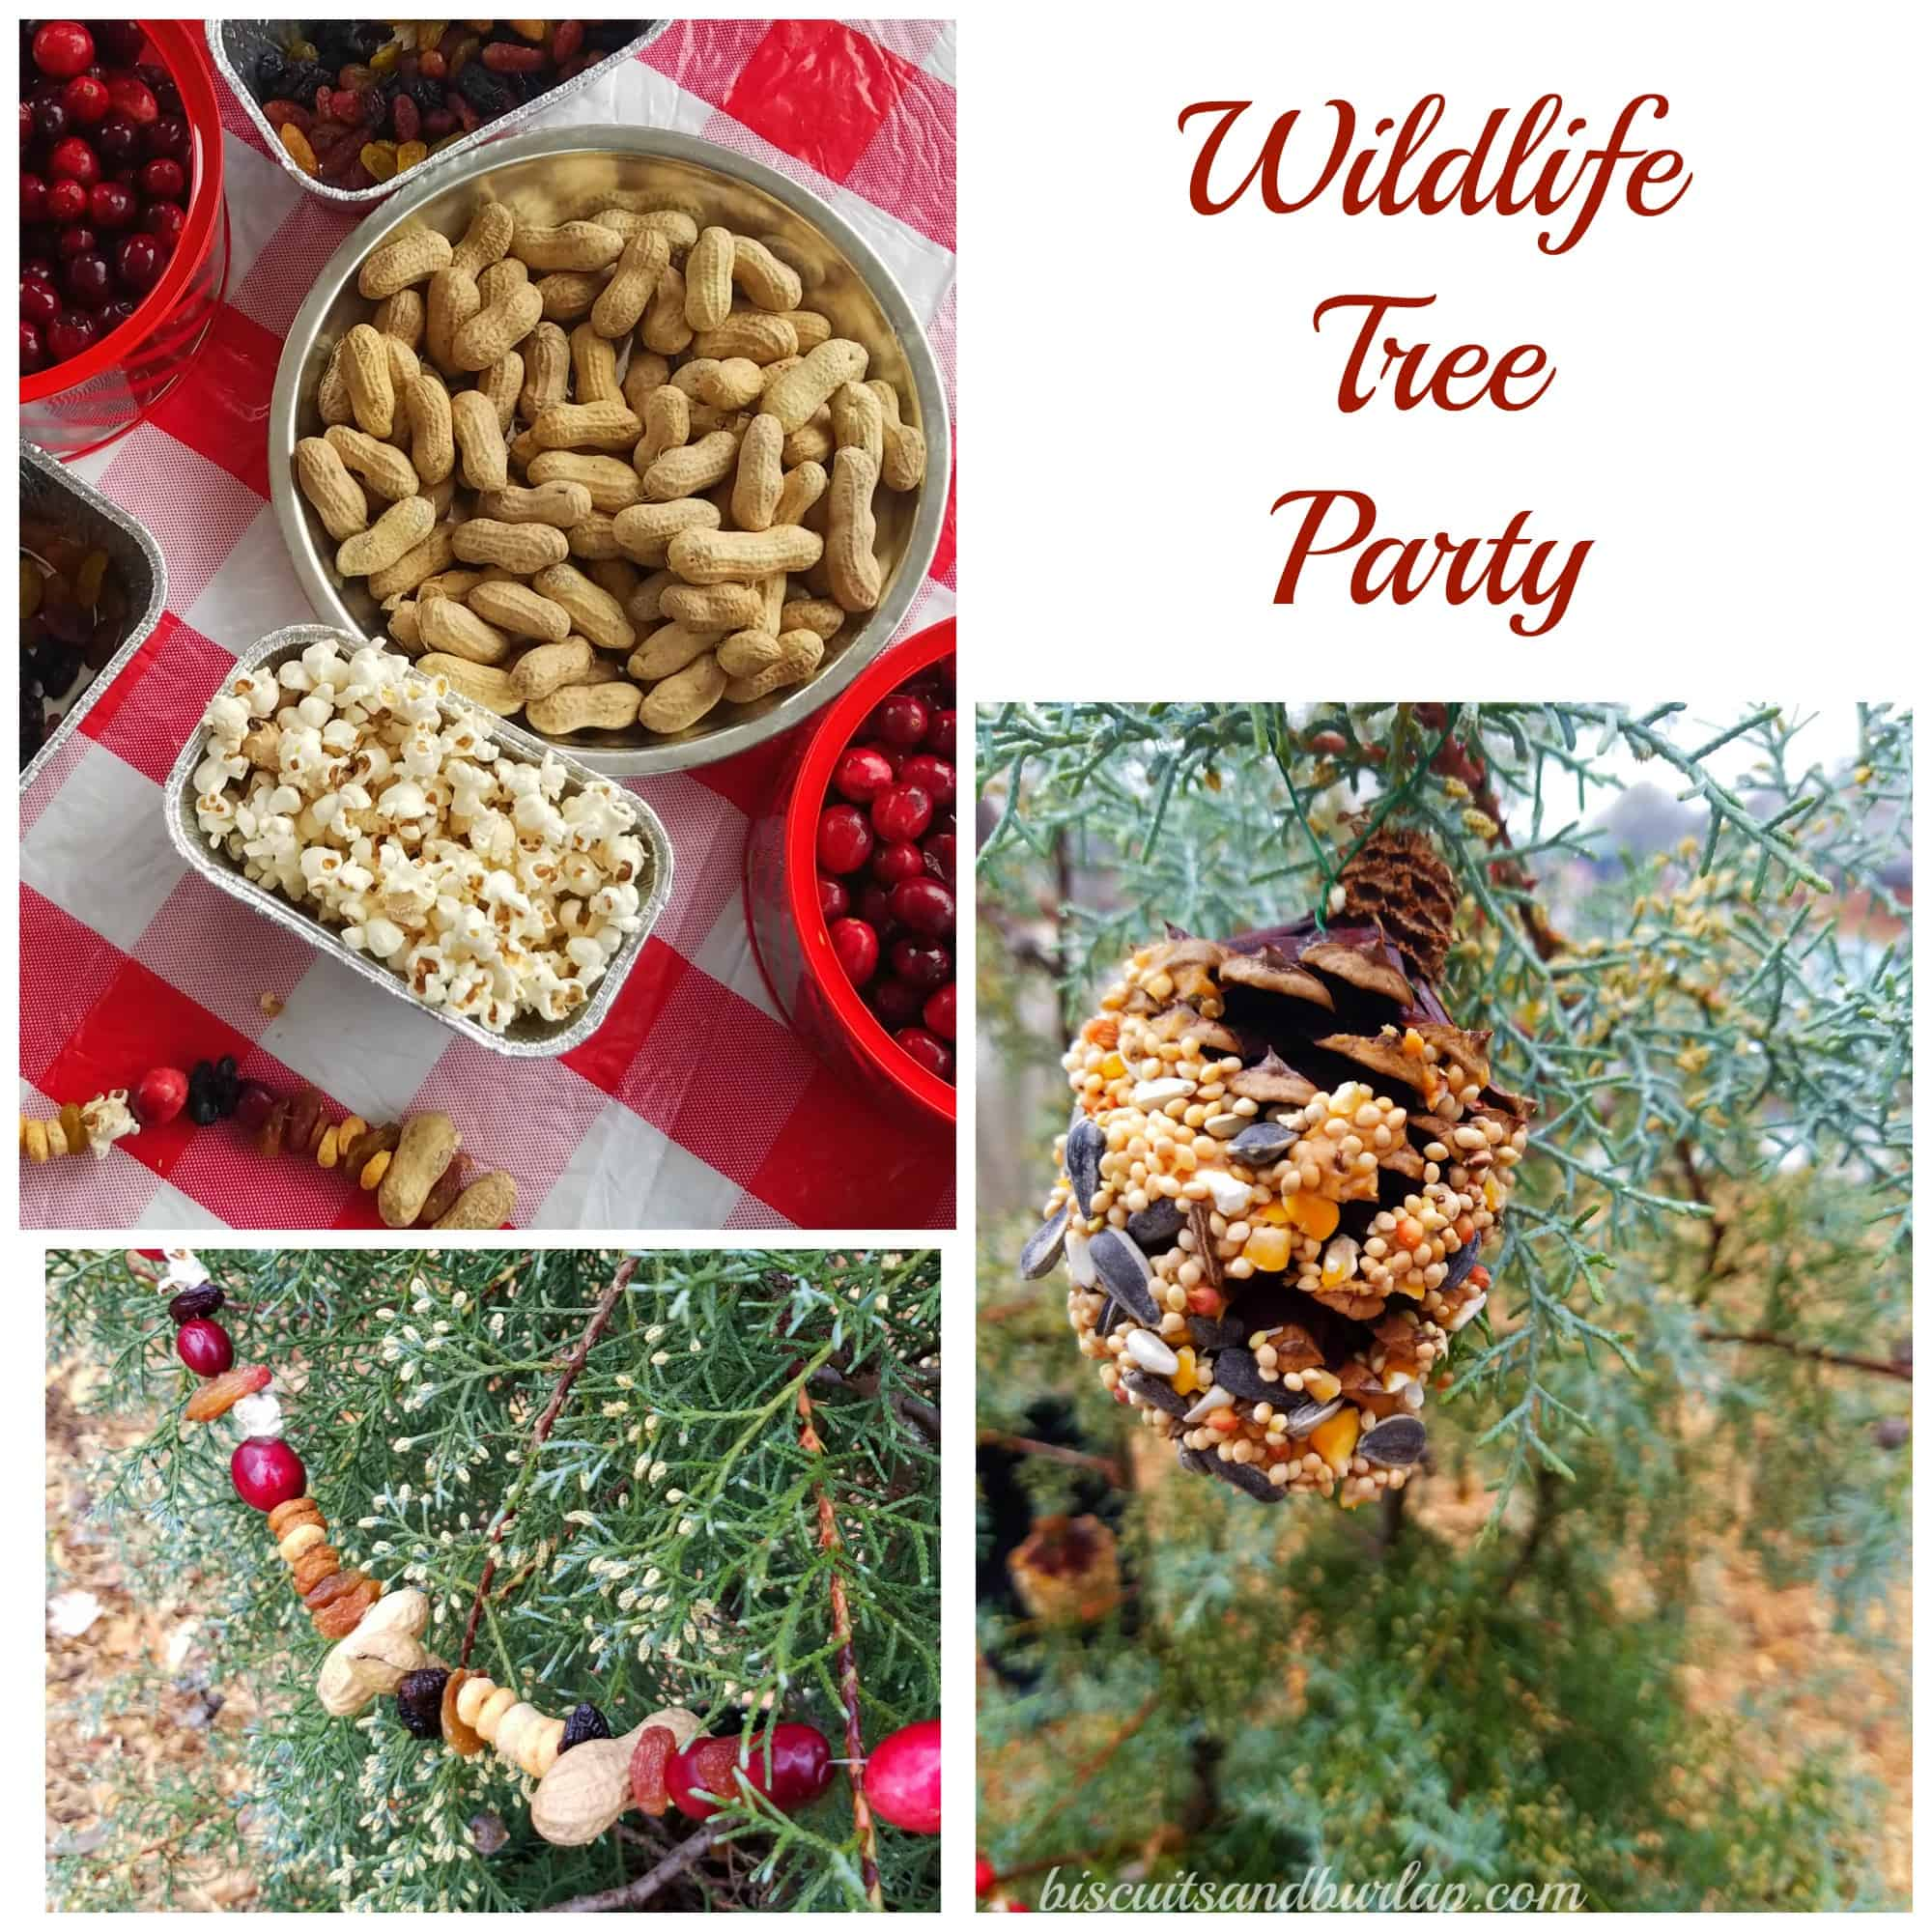 Wildlife Tree Party